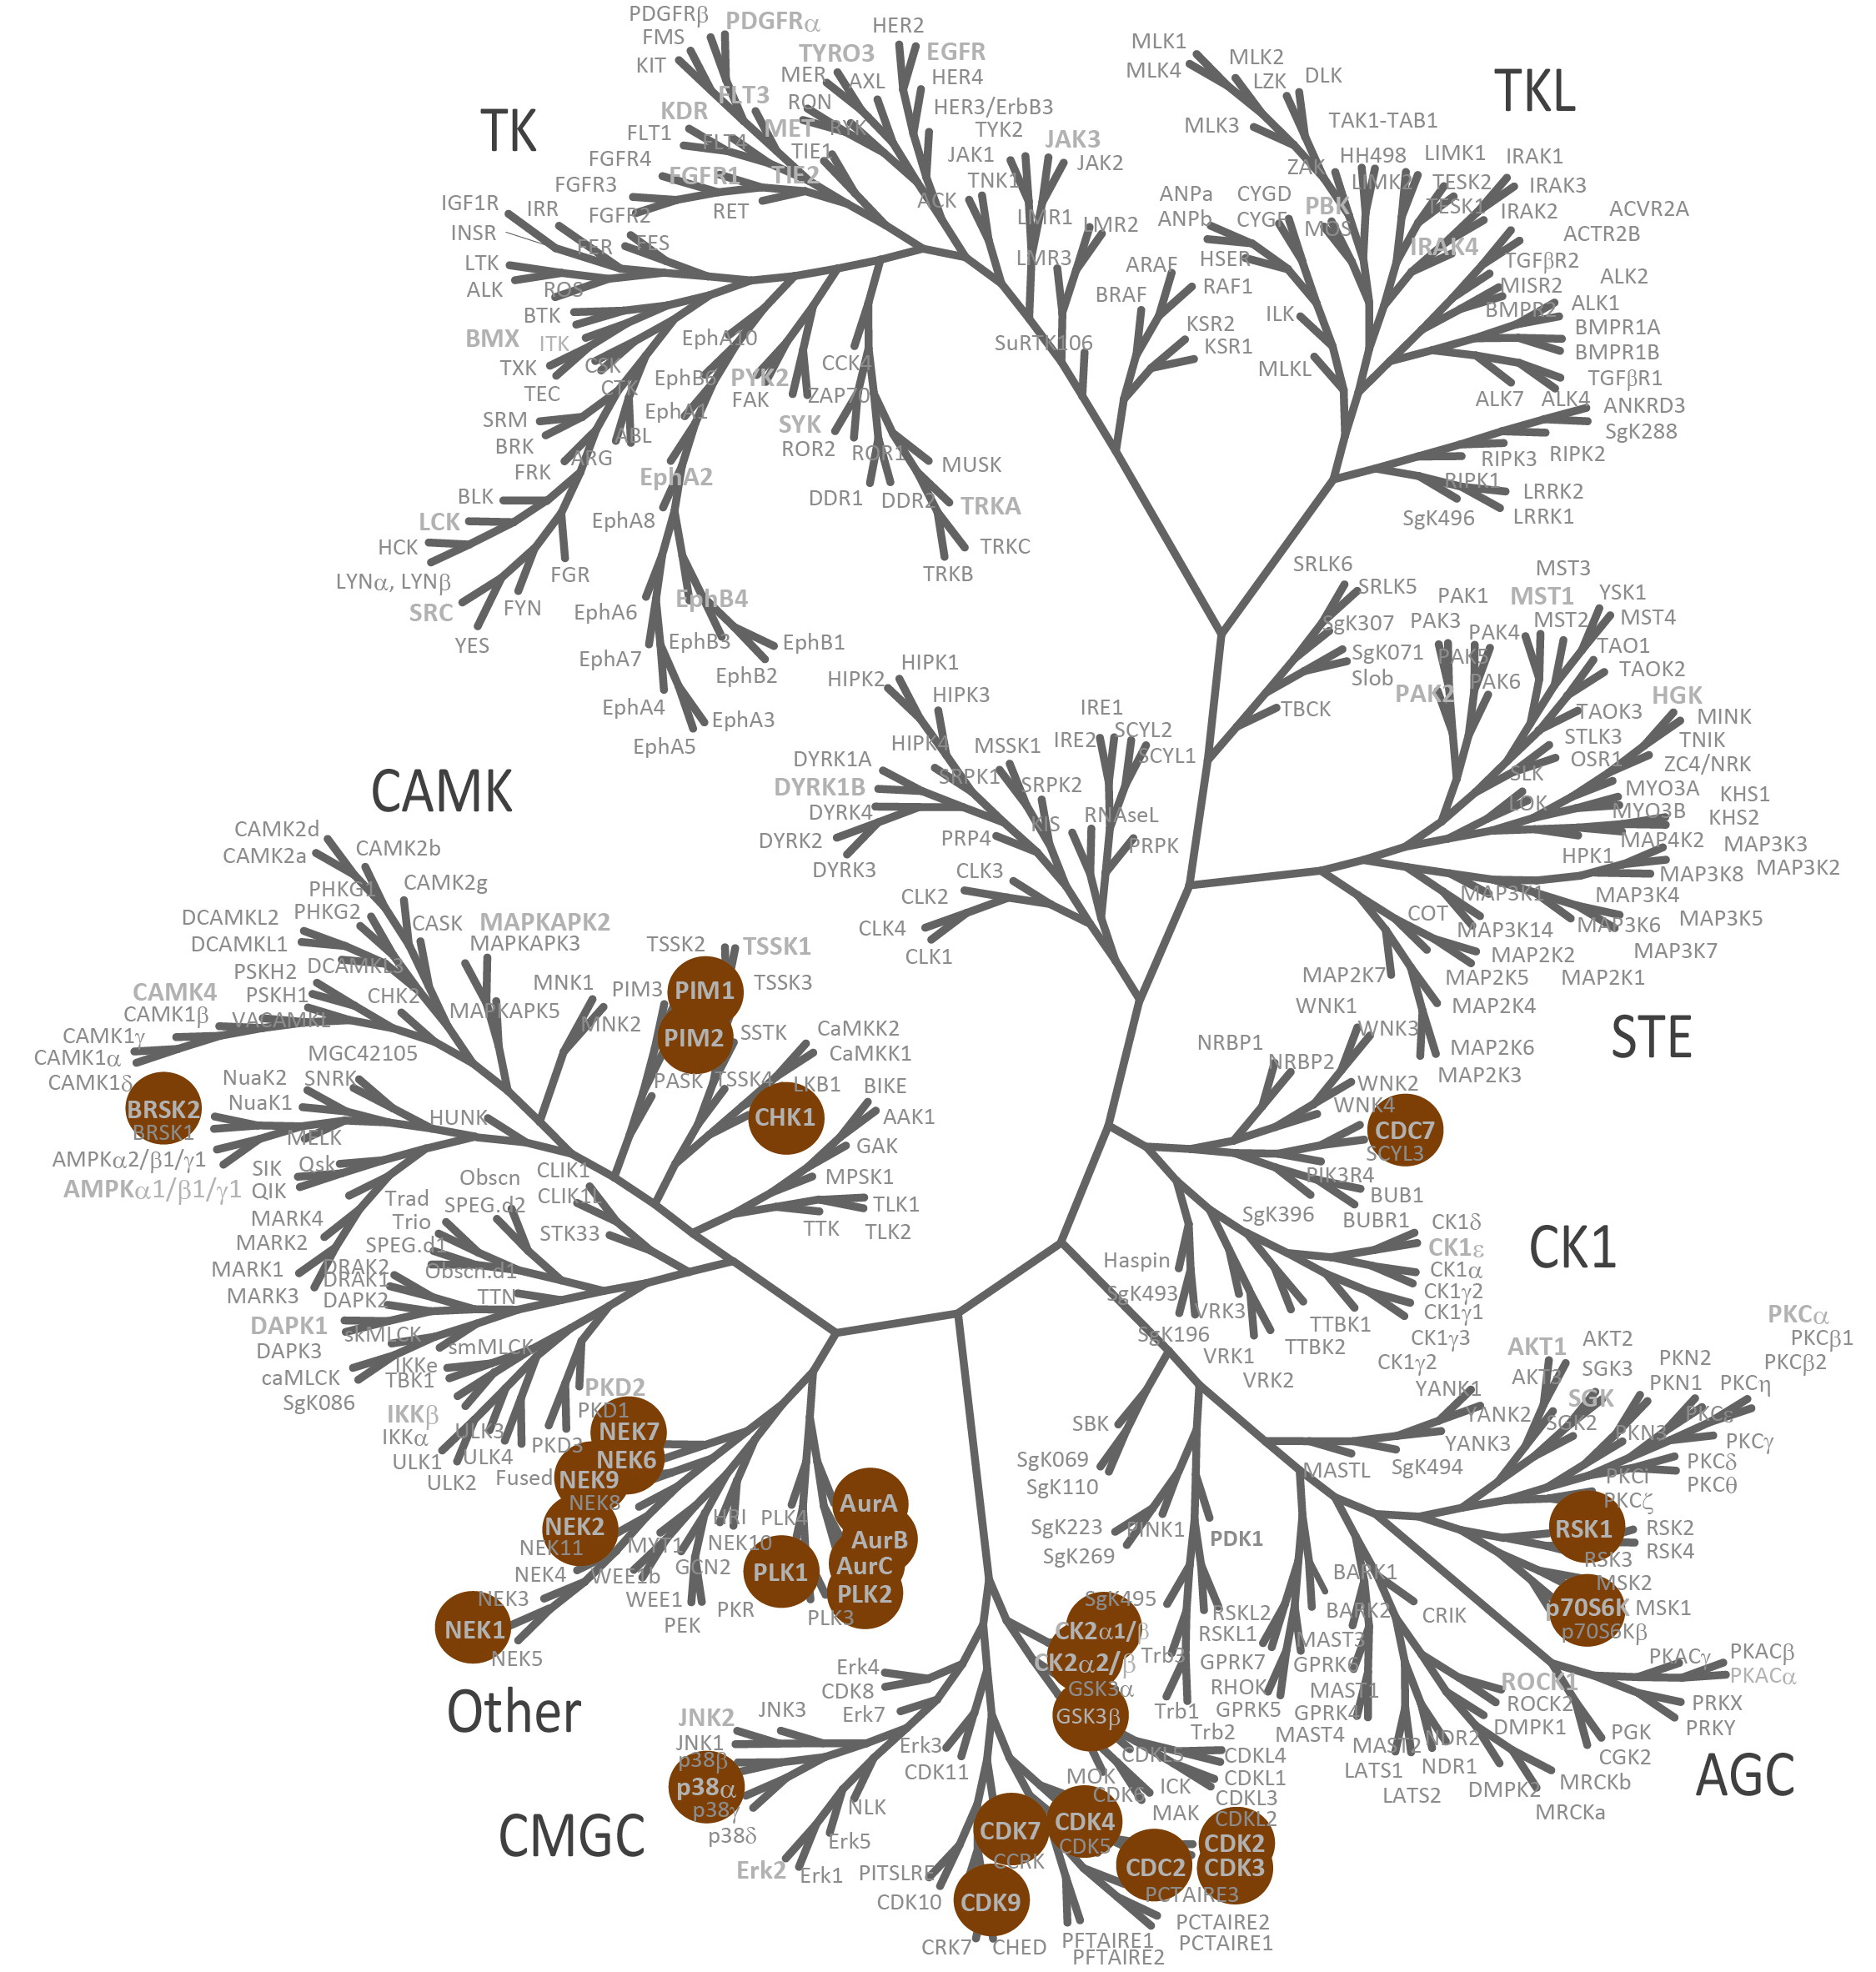 https://www.ntrc.nl/wp-content/uploads/2014/02/Kinome-Tree-Quickscout_Cell-Cycle_2.jpg